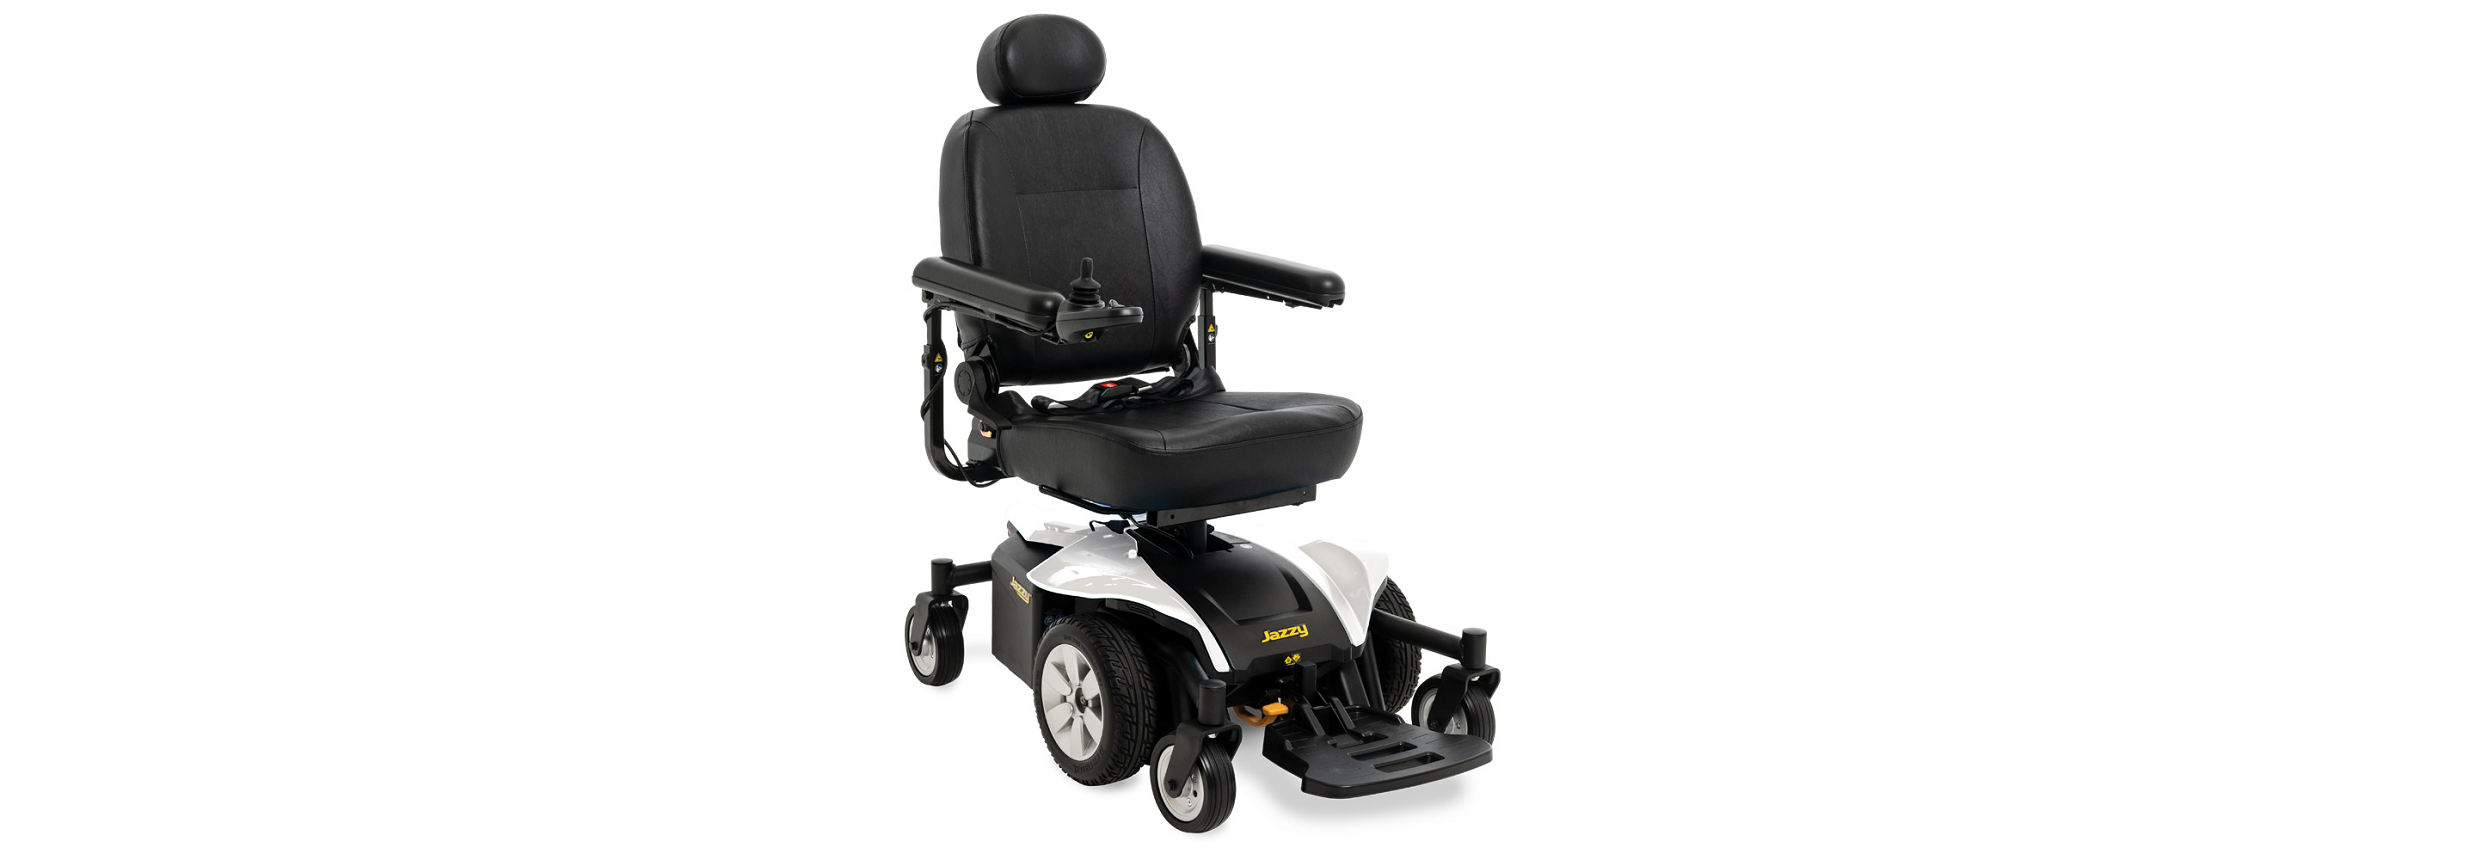 black friday deals on mobility scooters and power wheelchairs